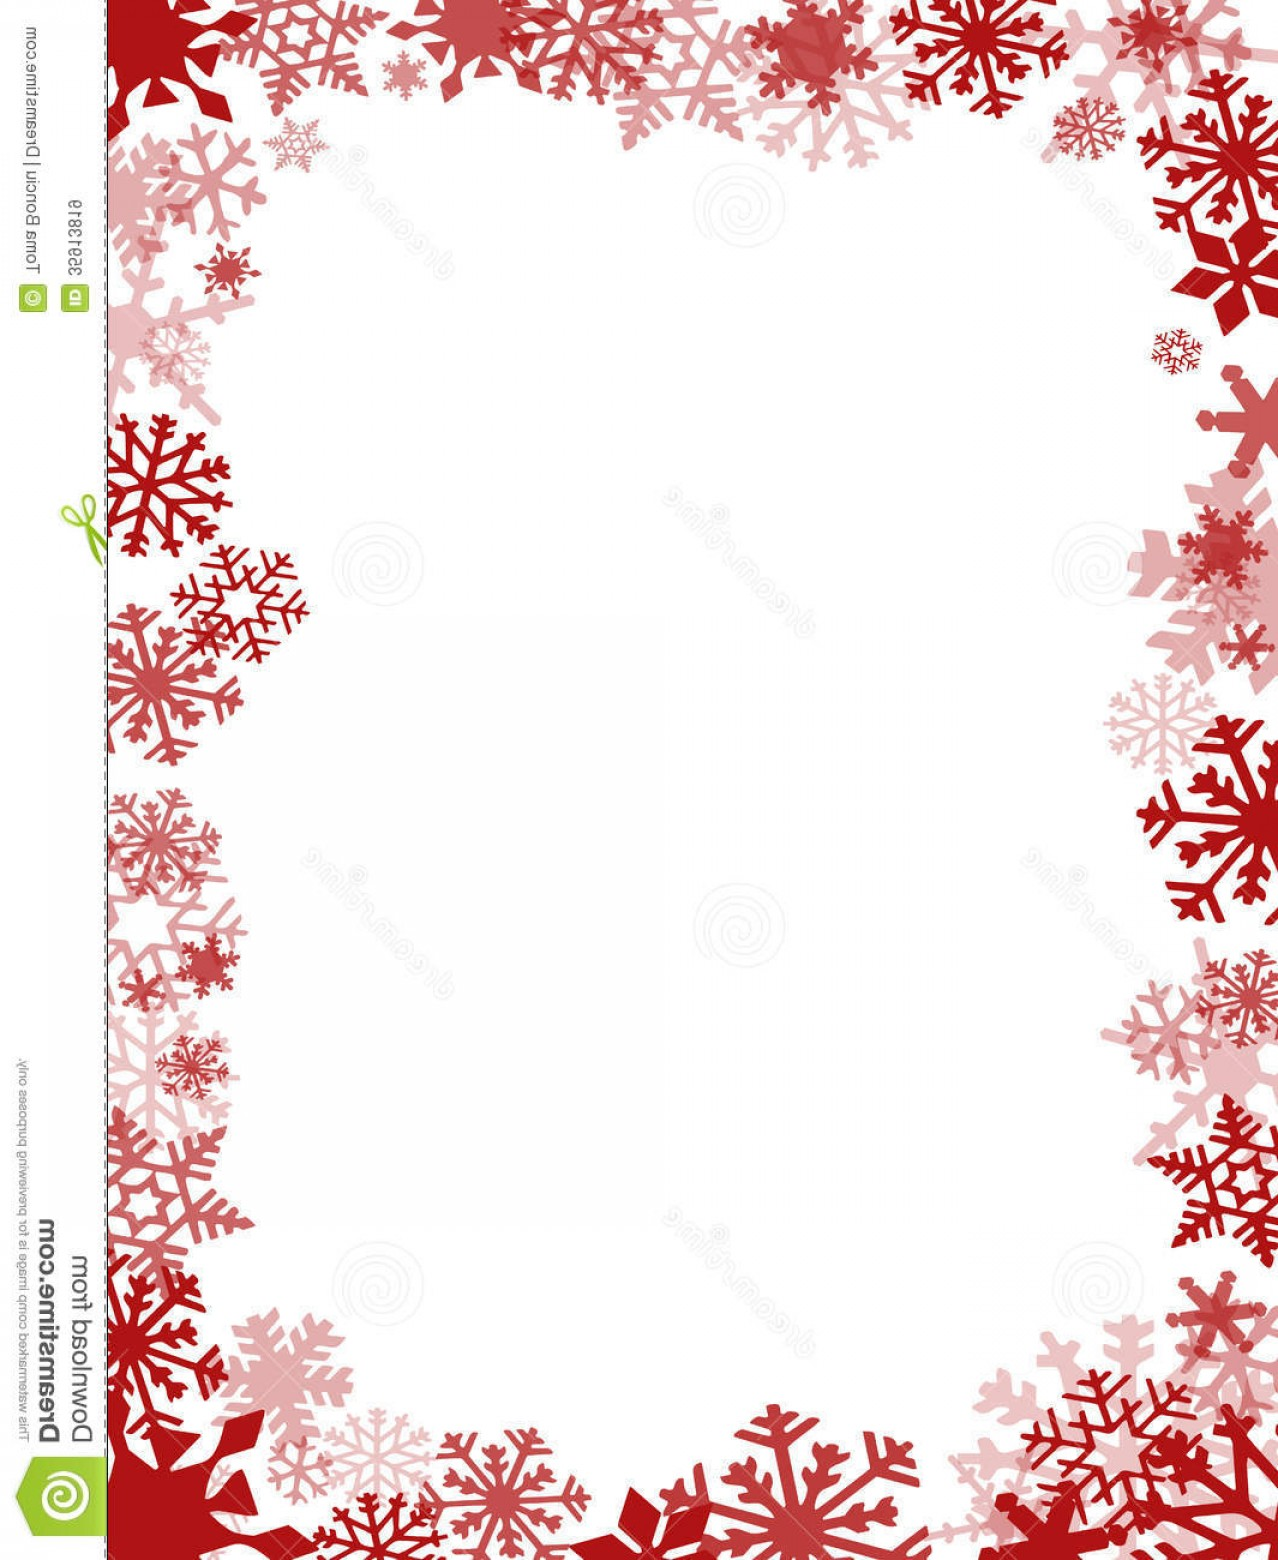 Snowflake Border Vector Art: Royalty Free Stock Images Red Christmas Card Frame Background Image